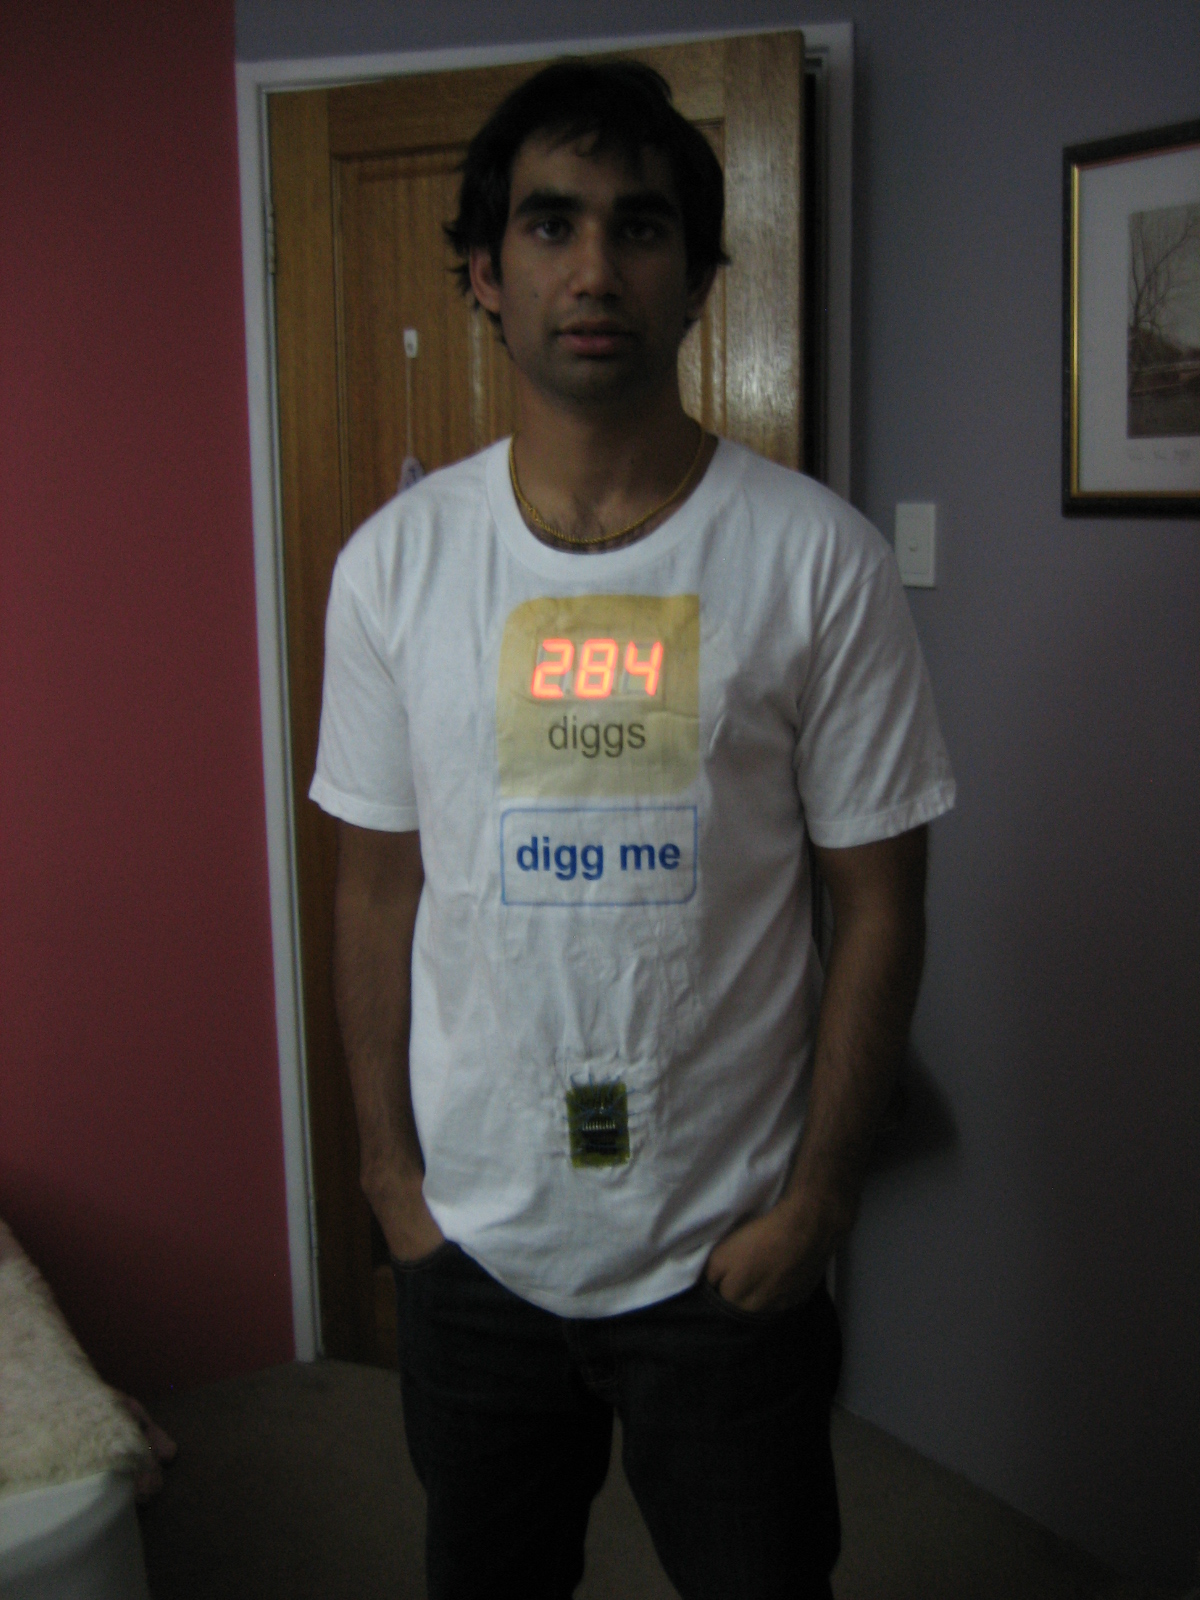 working 'digg me' tshirt using the digg button kit